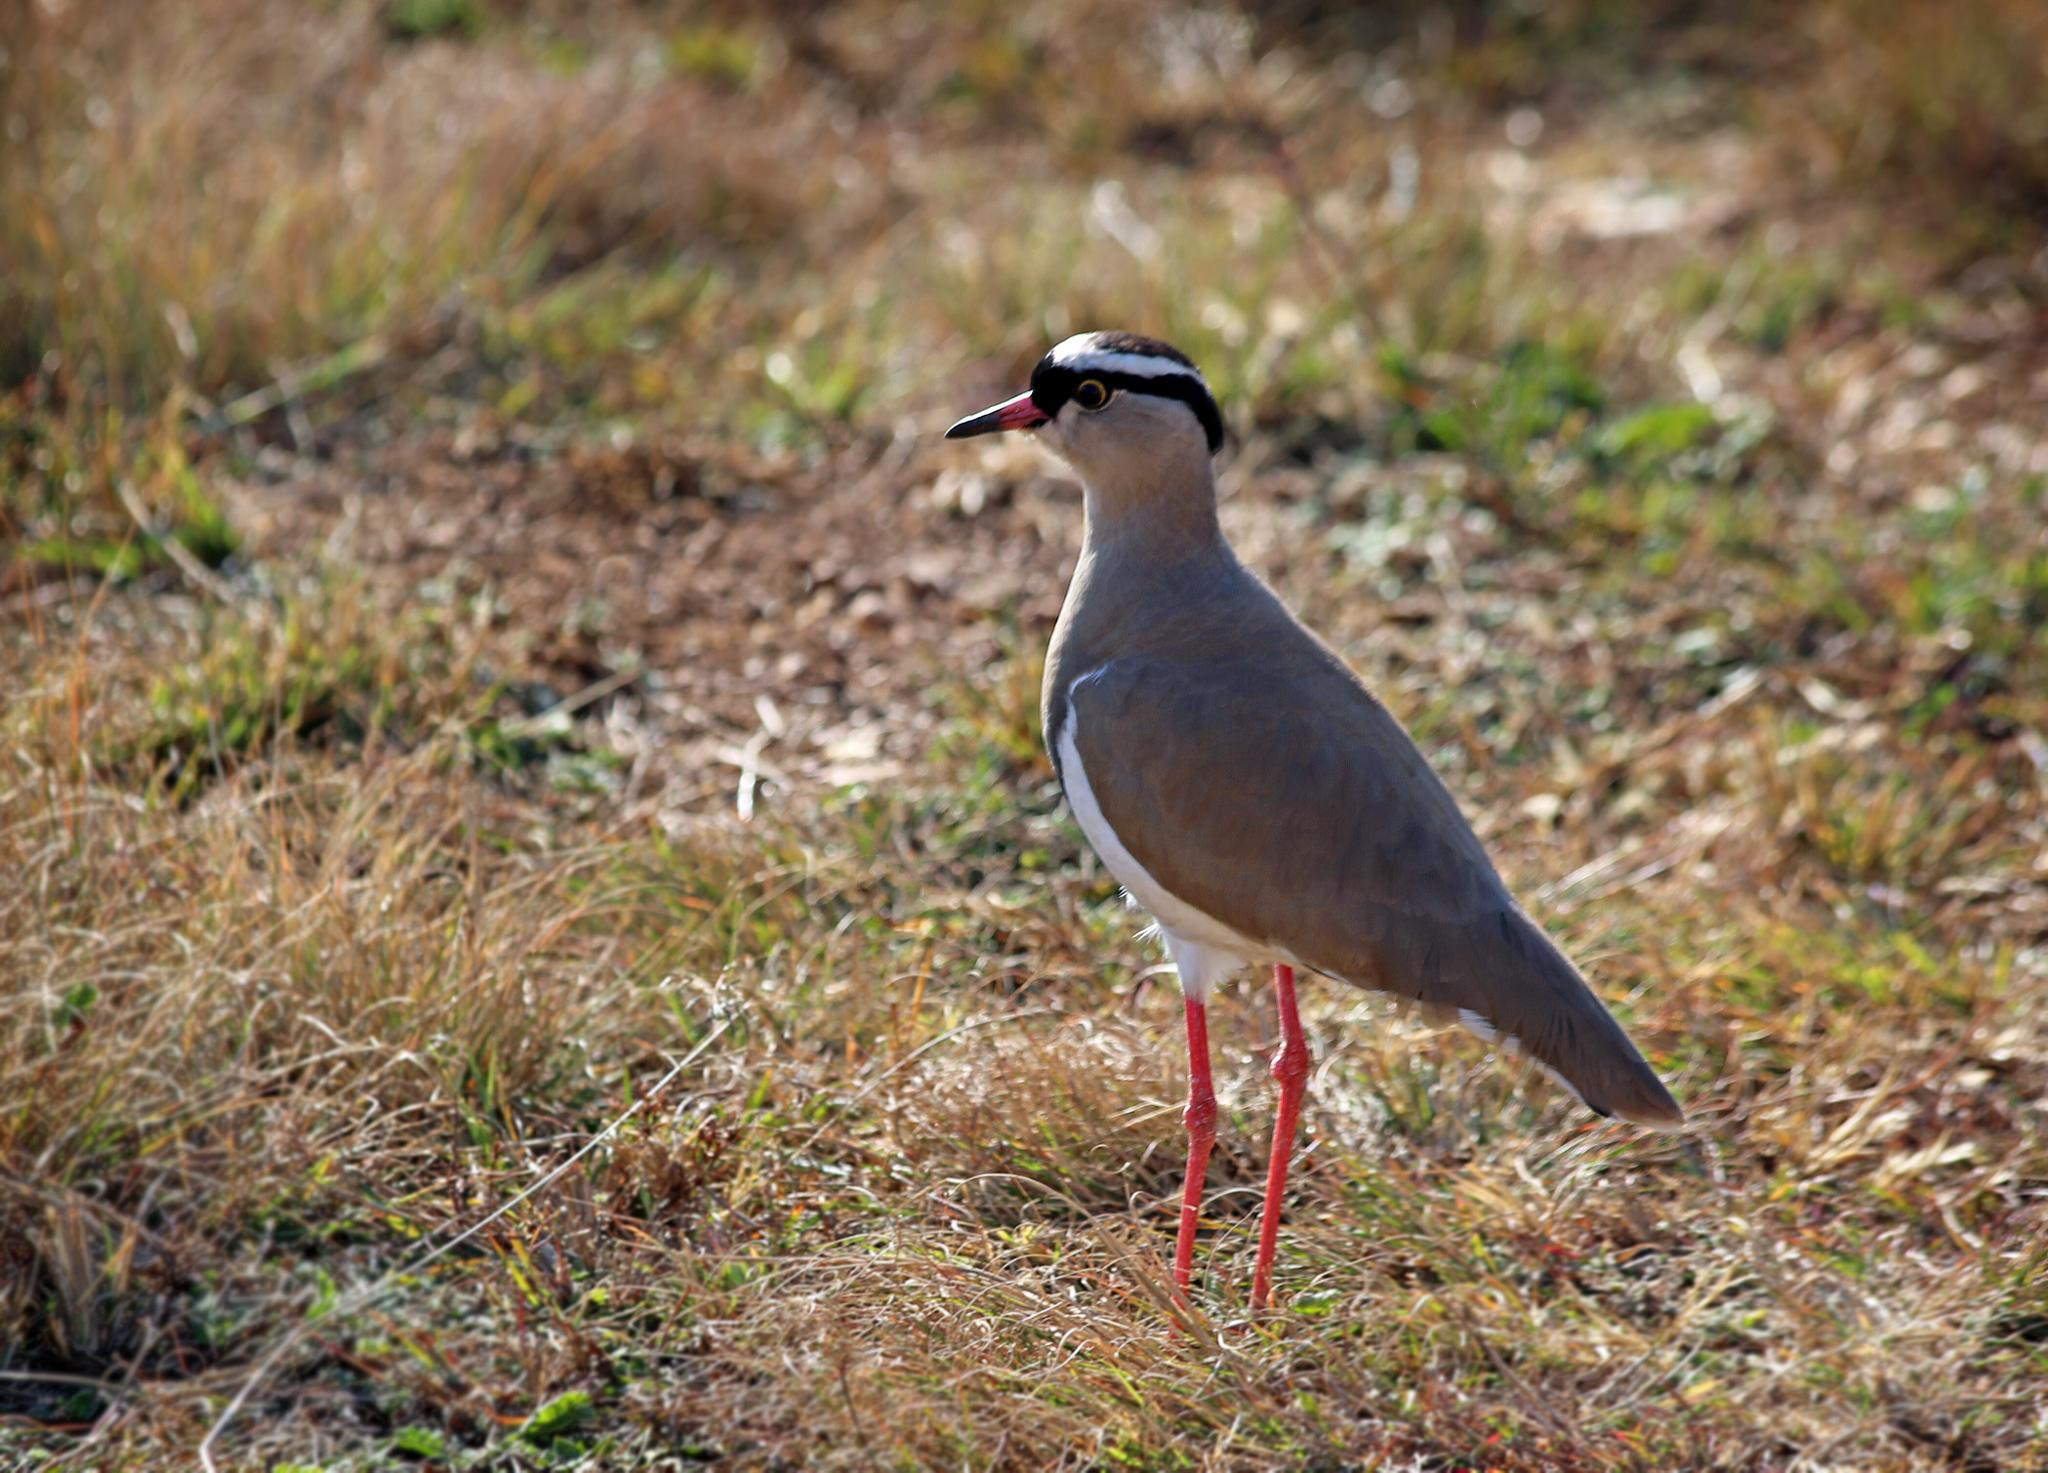 Plover 01 by susan.burger.10